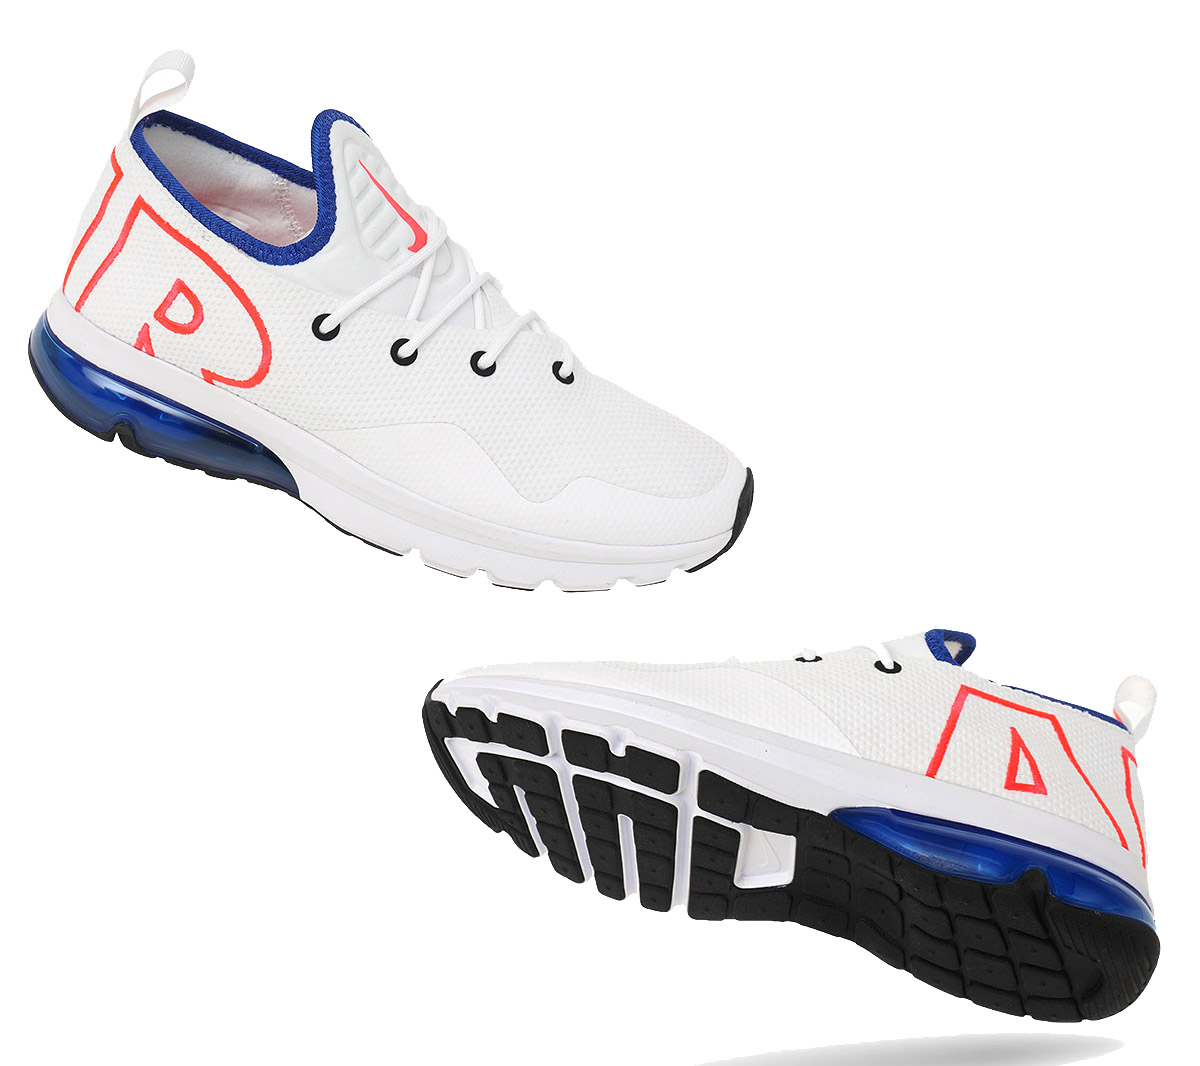 new arrival d032e baa26 Nike Air Max Flair 50 Men s Sneakers Shoes White Sneakers 270 AA3824 ...